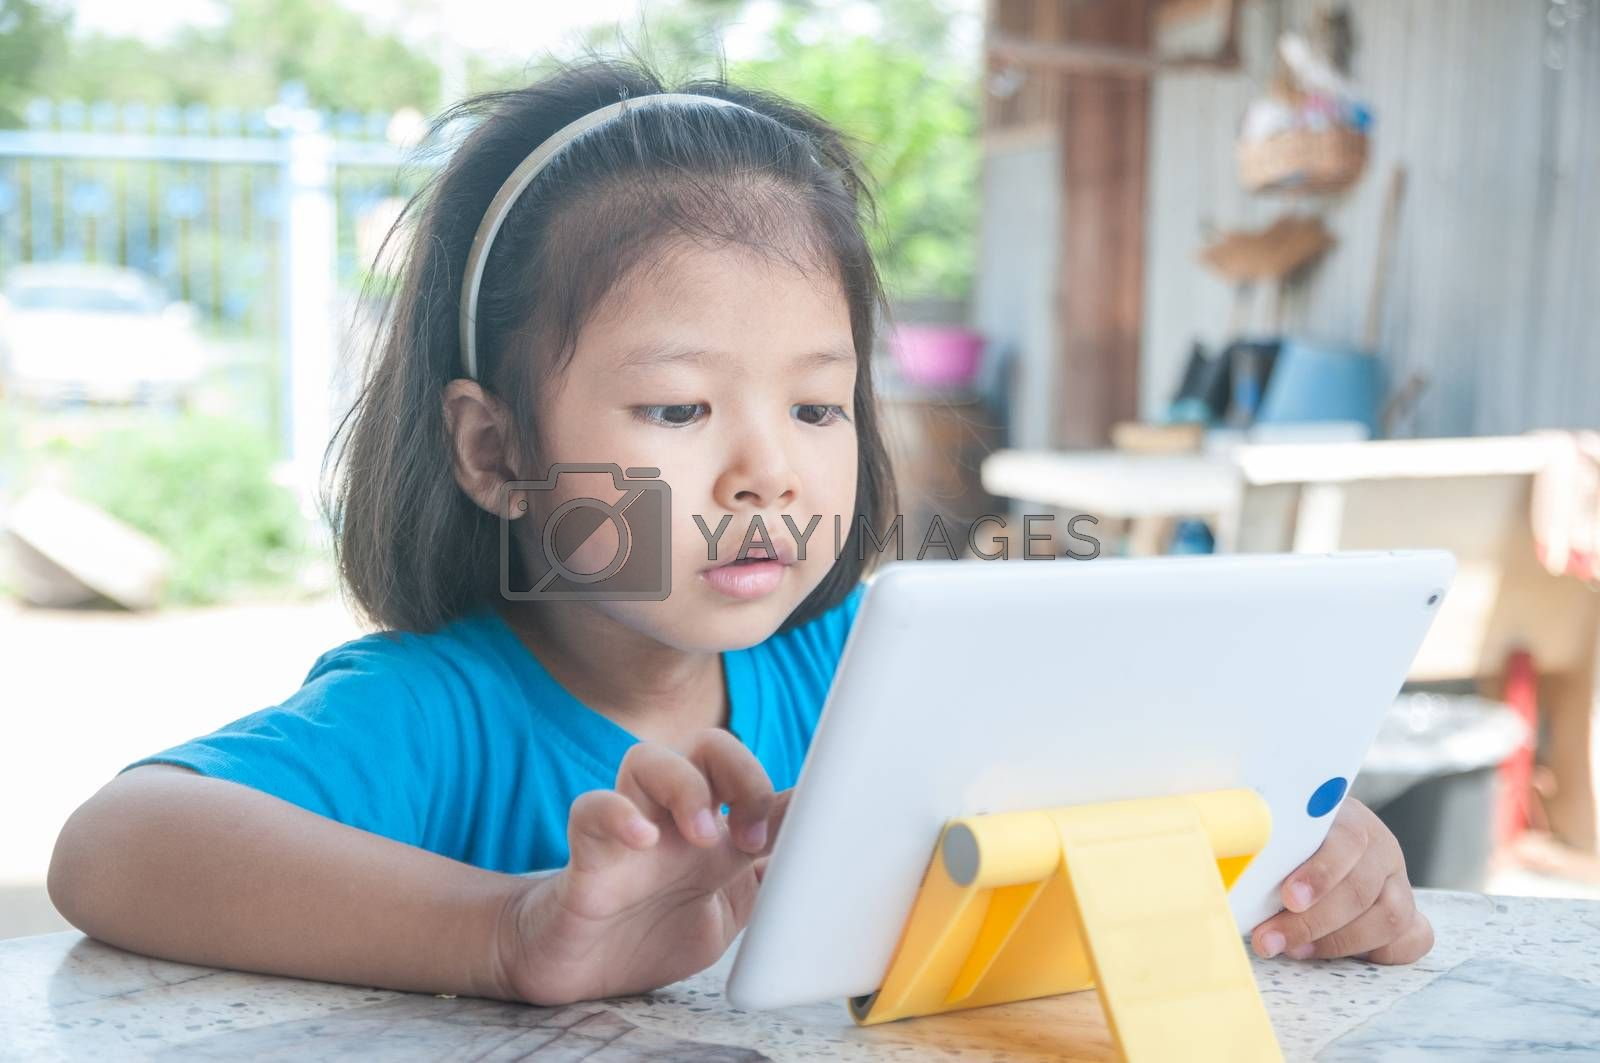 Asian Girl learning online course or playing game online on Digital Wireless Device or Tablet at home as Technology e-learning concept.